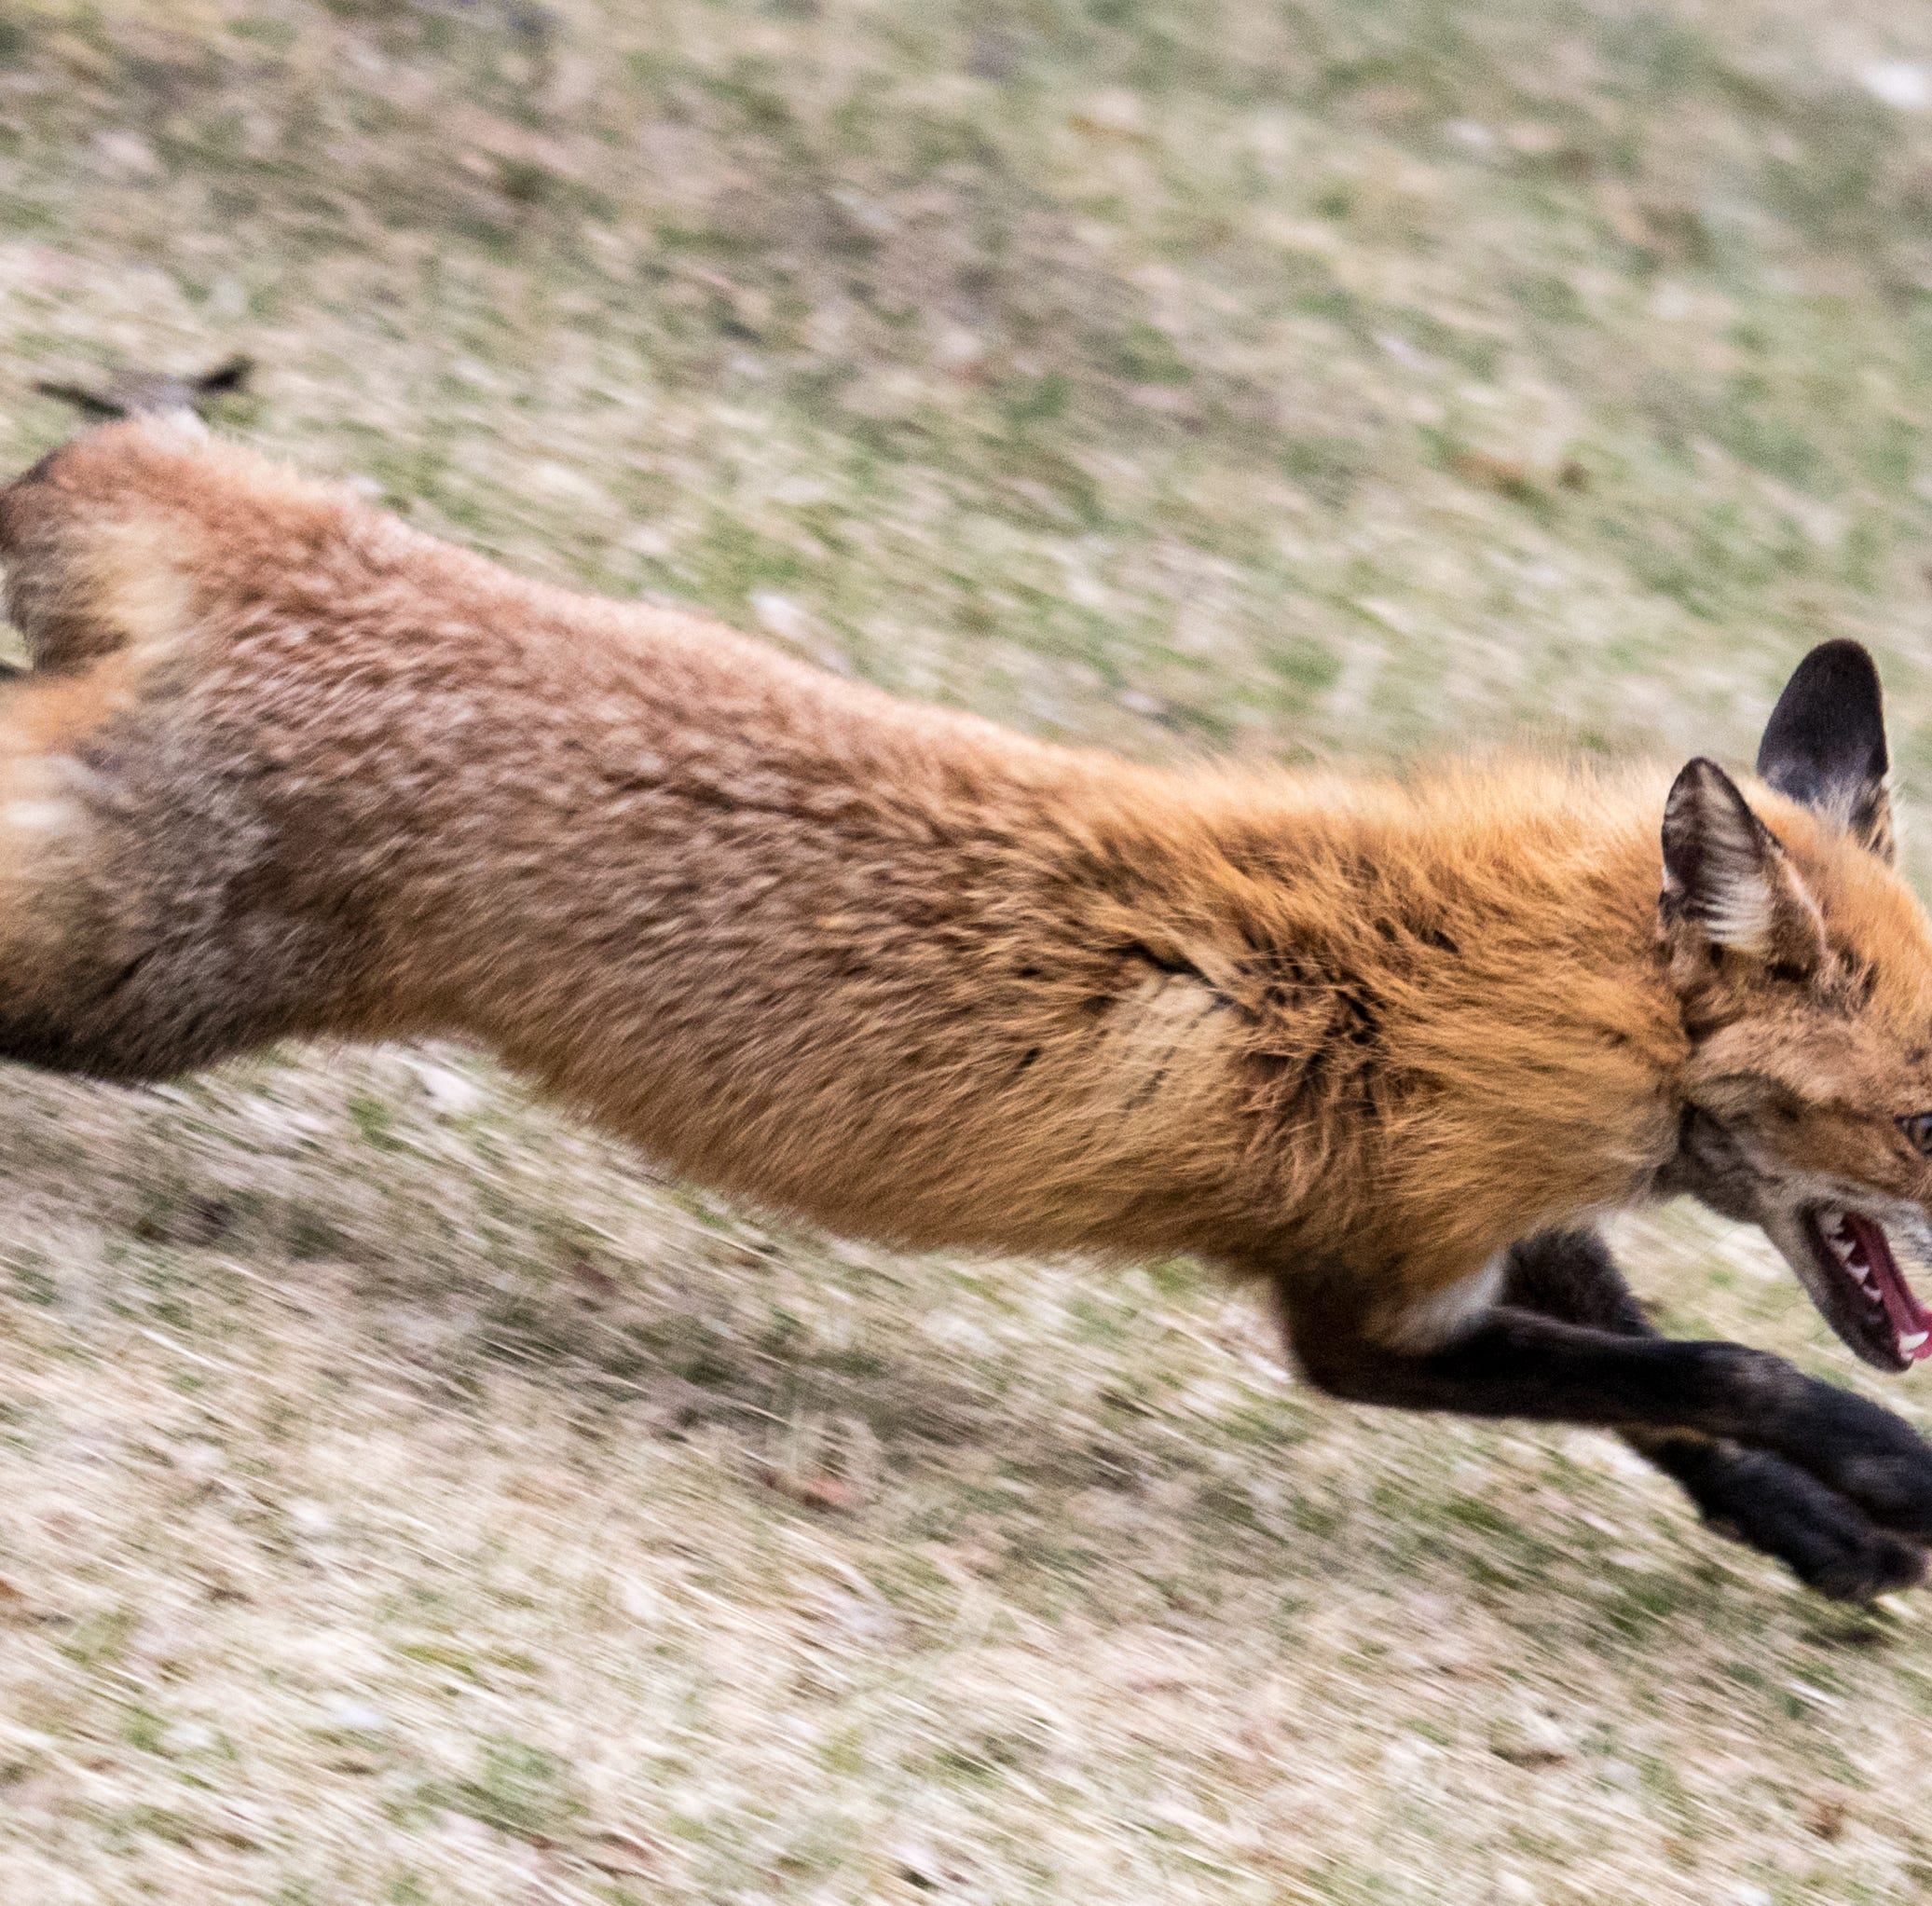 This fox at the UR became a social media hit. Now it's running for office.